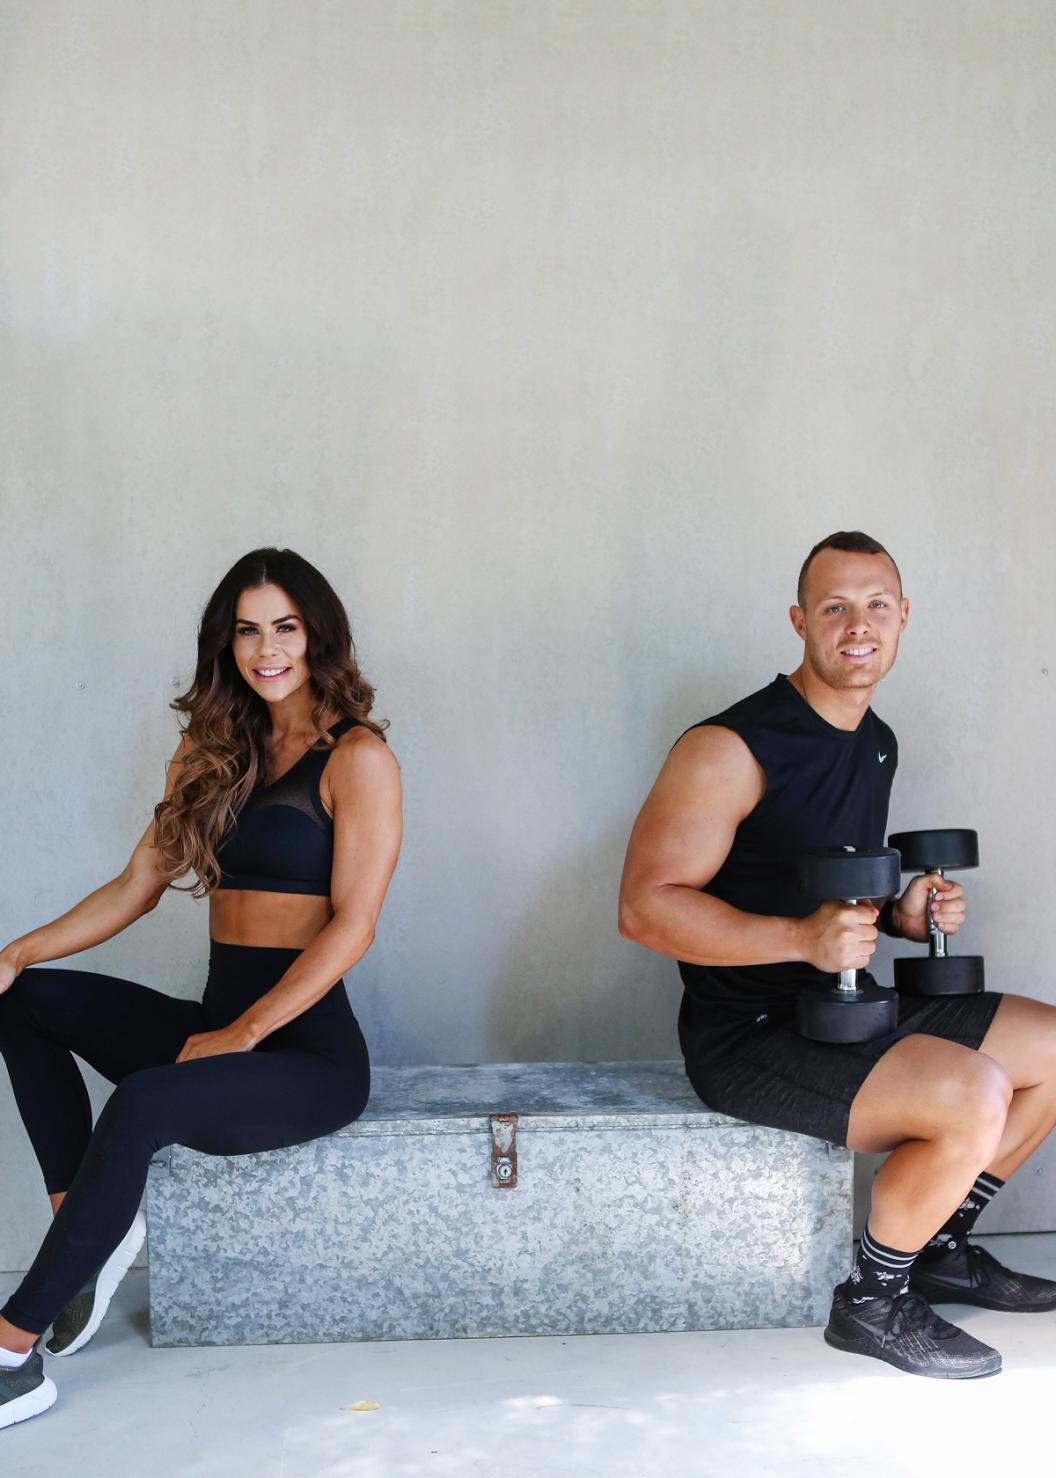 couples that exercise together have better relationships, couple eating together